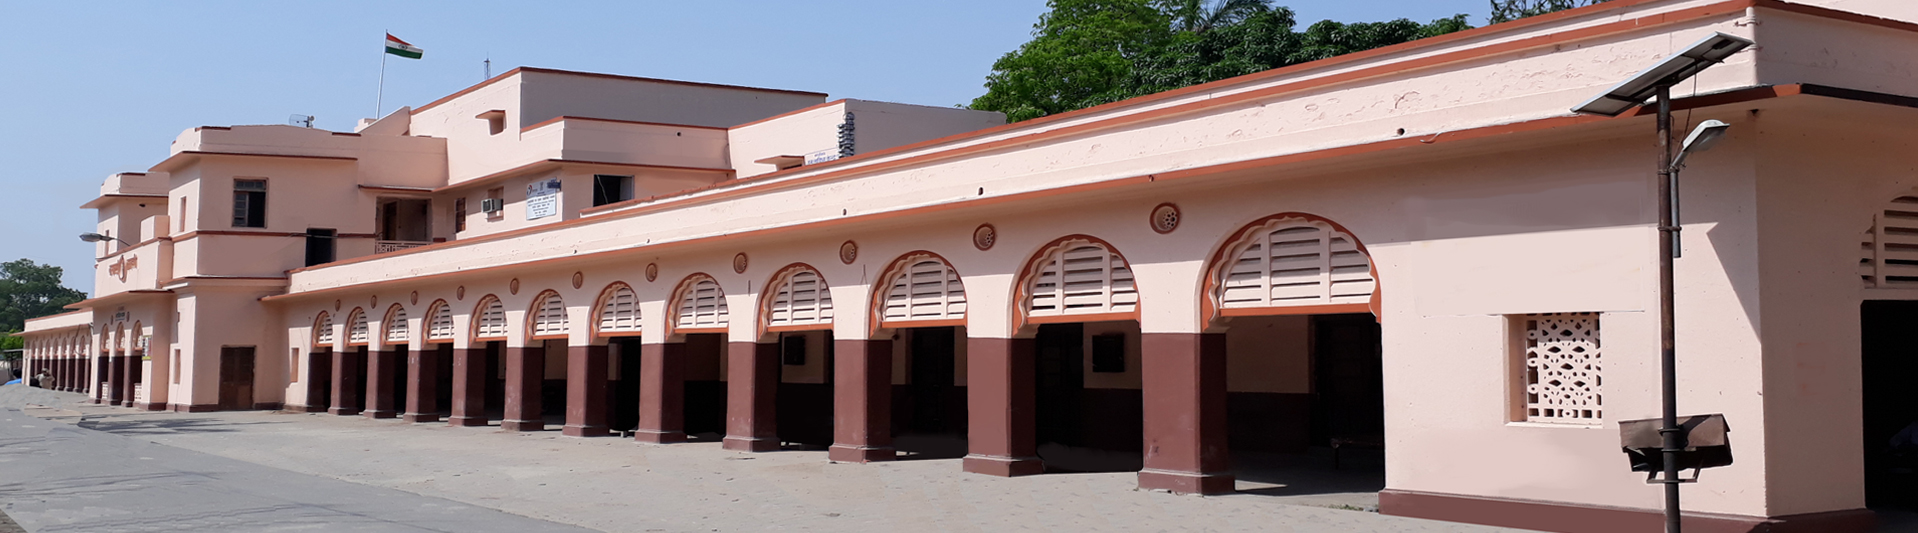 Judicial Building Collectorate